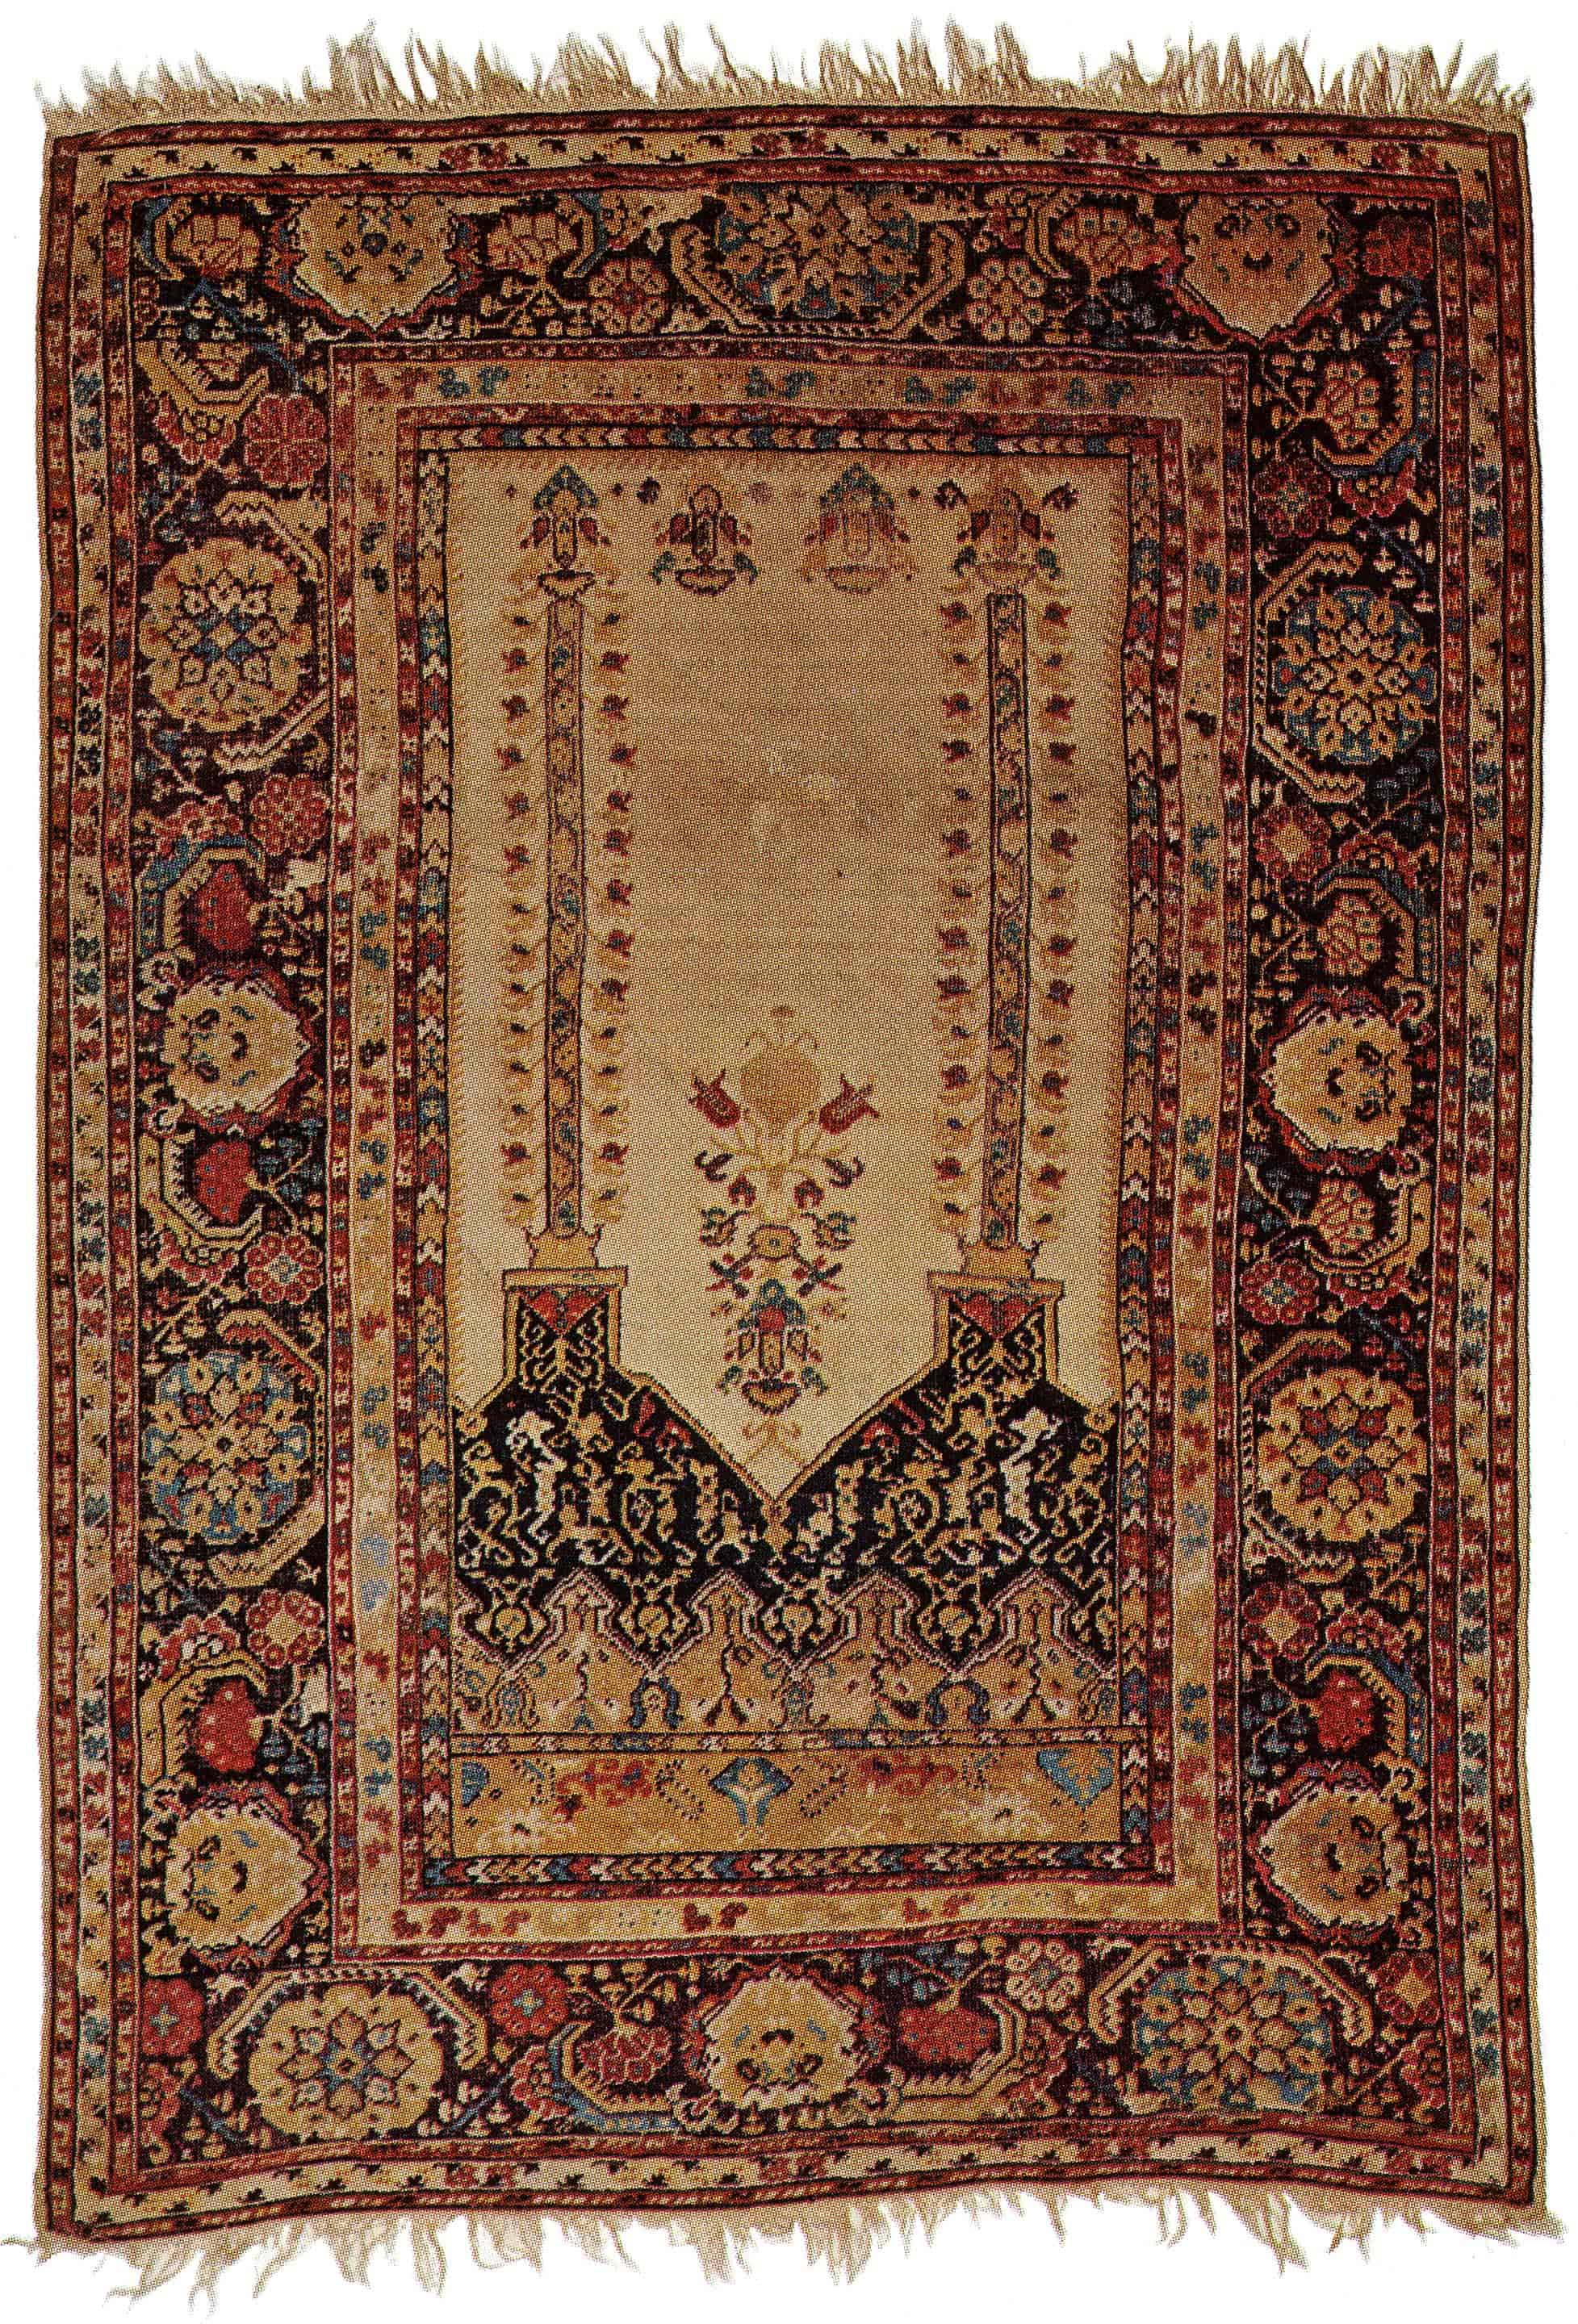 islamic prayer rugs exhibitions the renaissance society. Black Bedroom Furniture Sets. Home Design Ideas